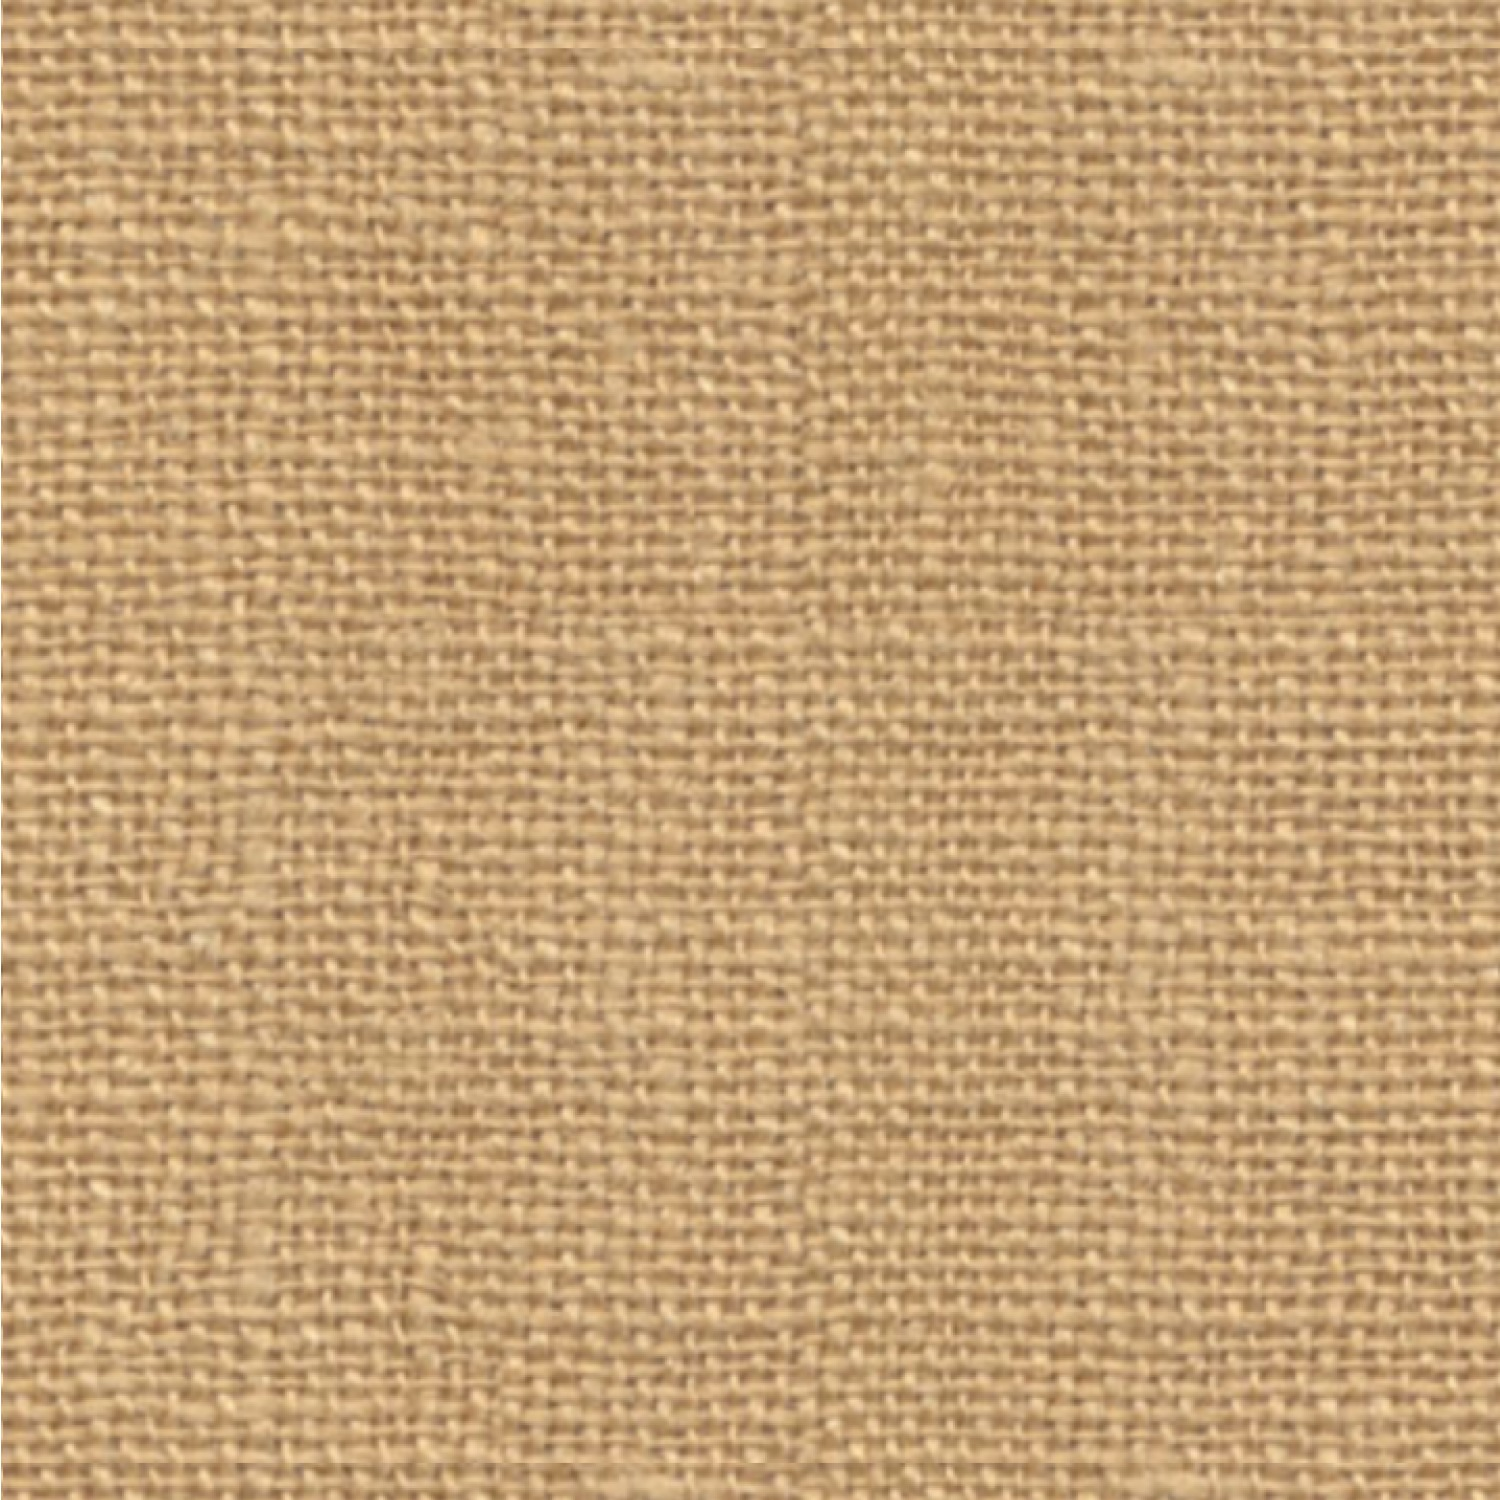 Octopus Amp Burlap Print Wallpaper Amp Surface Covering Peel